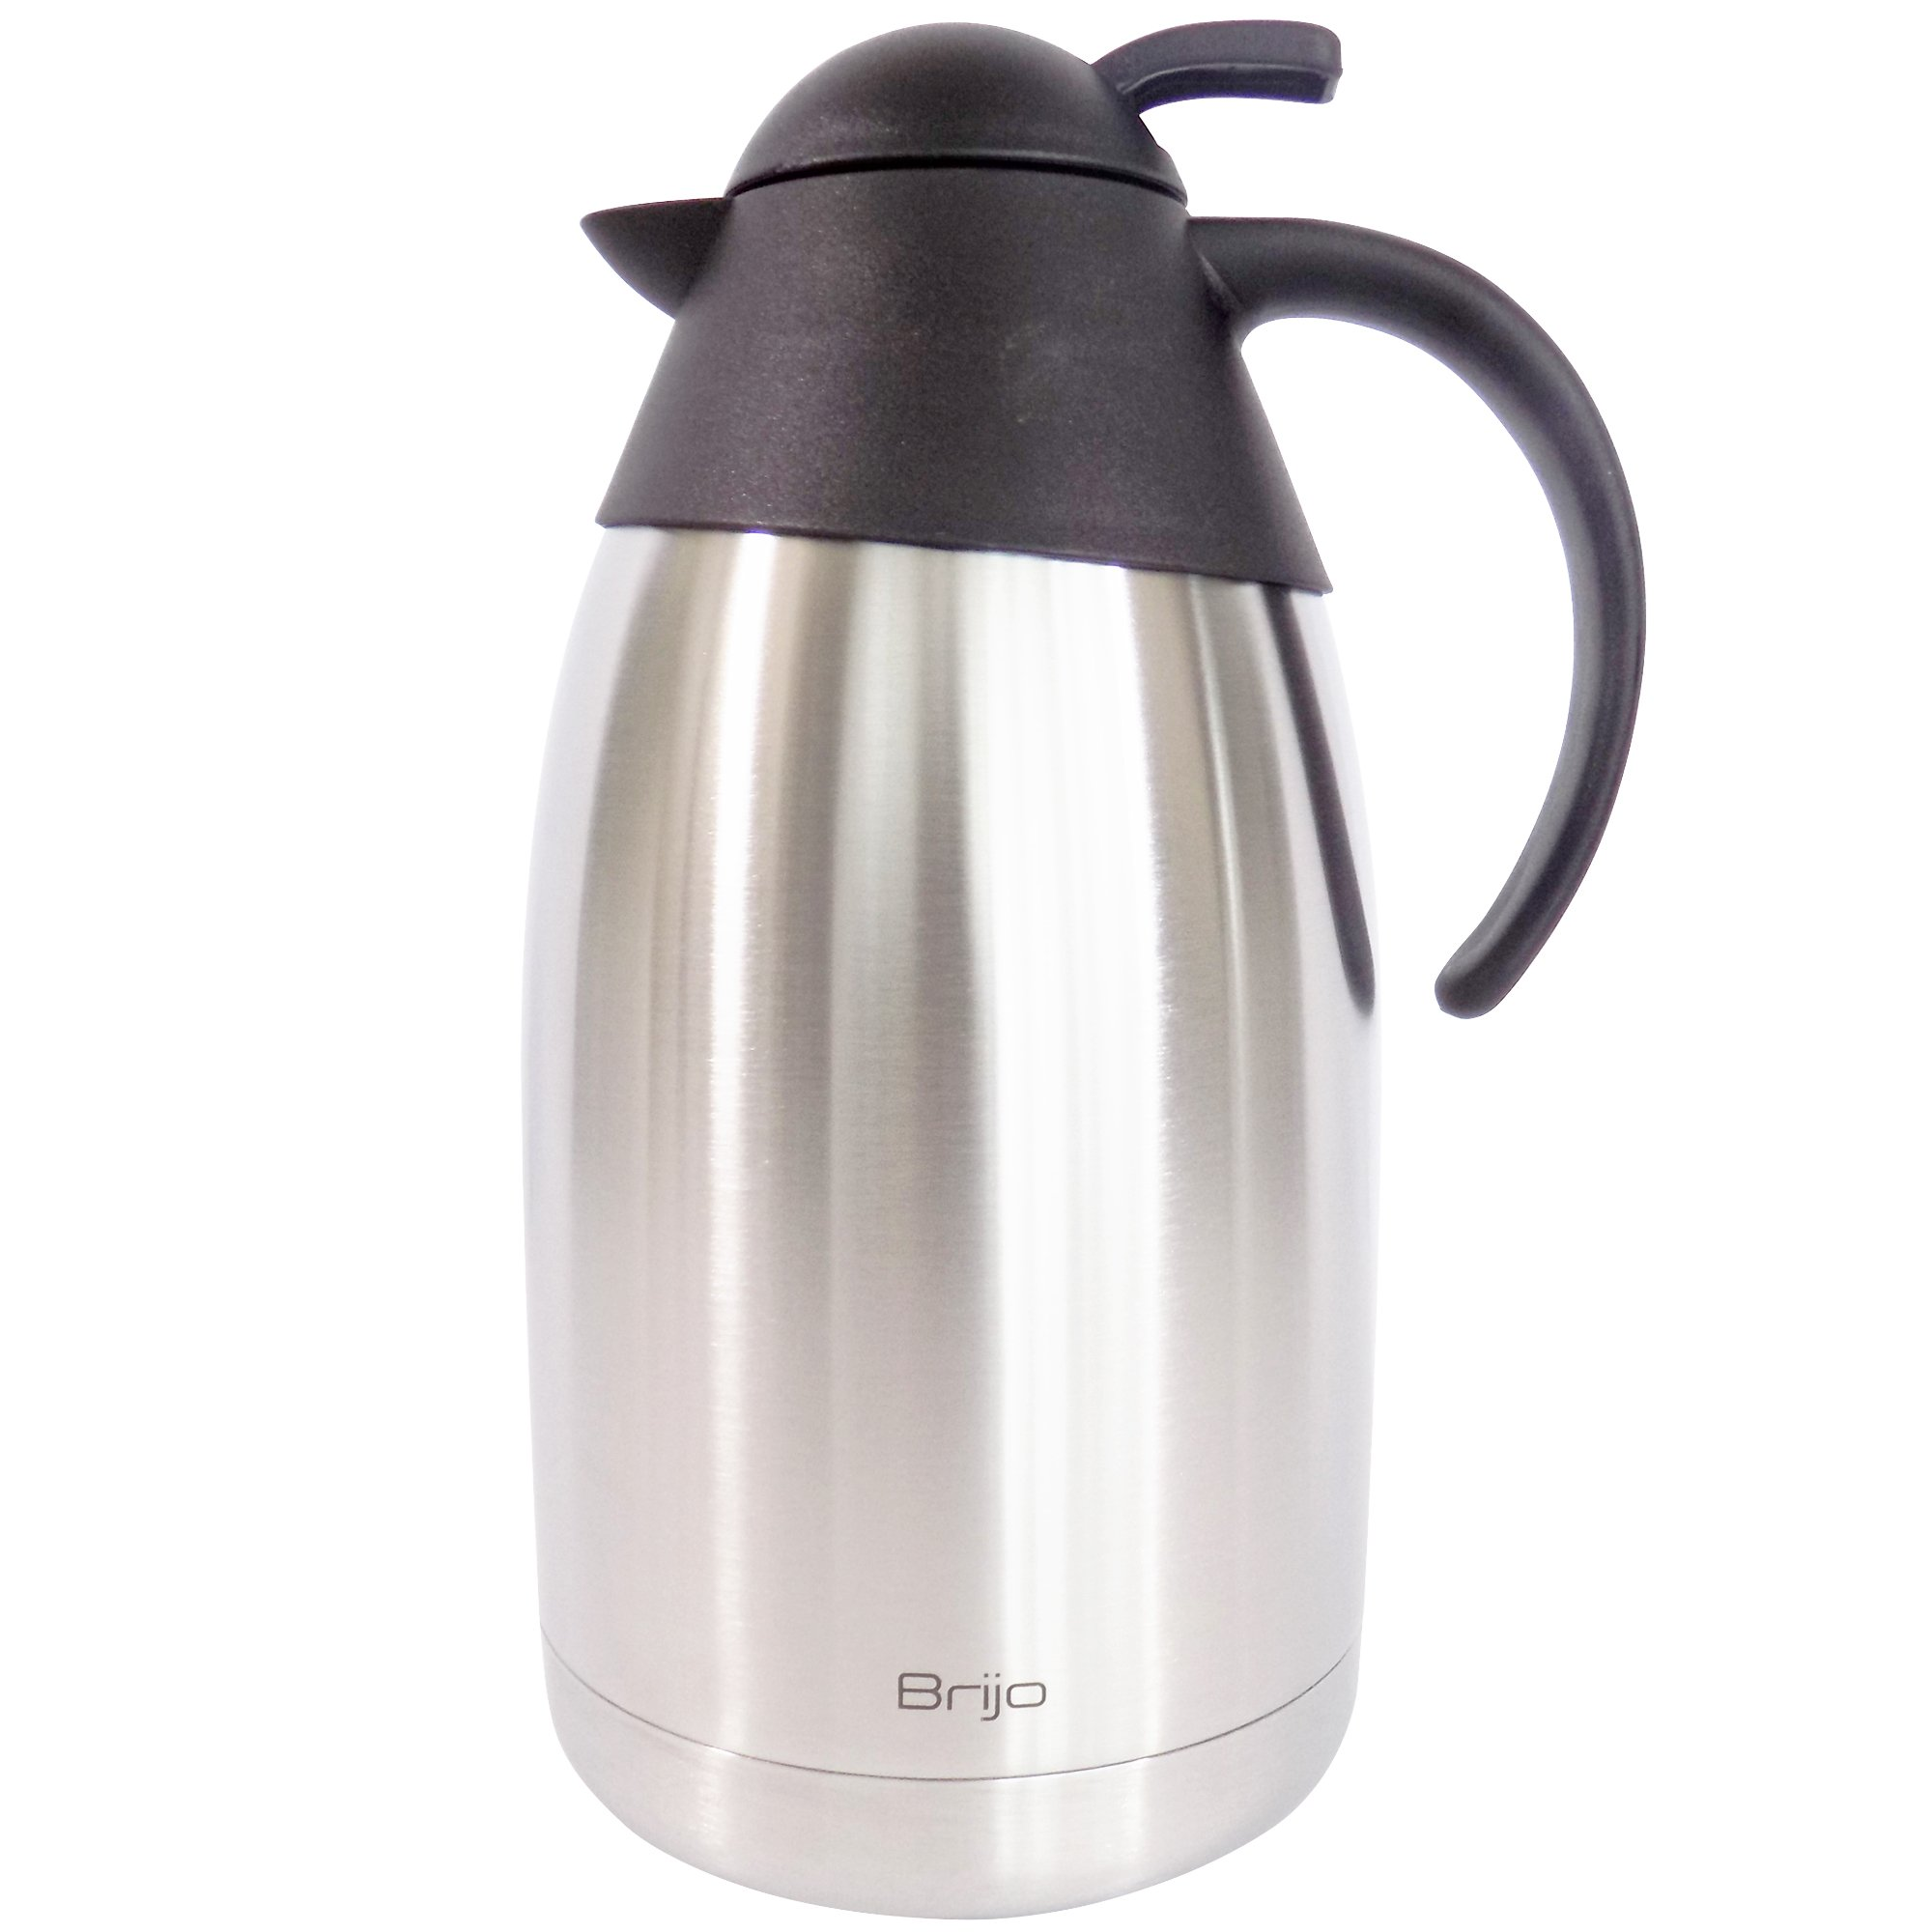 Coffee Carafe Thermal Insulated |Large 12 Cup 68 Ounce 2 Liter Capacity | Stainless Steel with Double Wall Vacuum Insulation | Keep Drinks Hot or Cold | Brush and Cloth Included by Brijo by Brijo